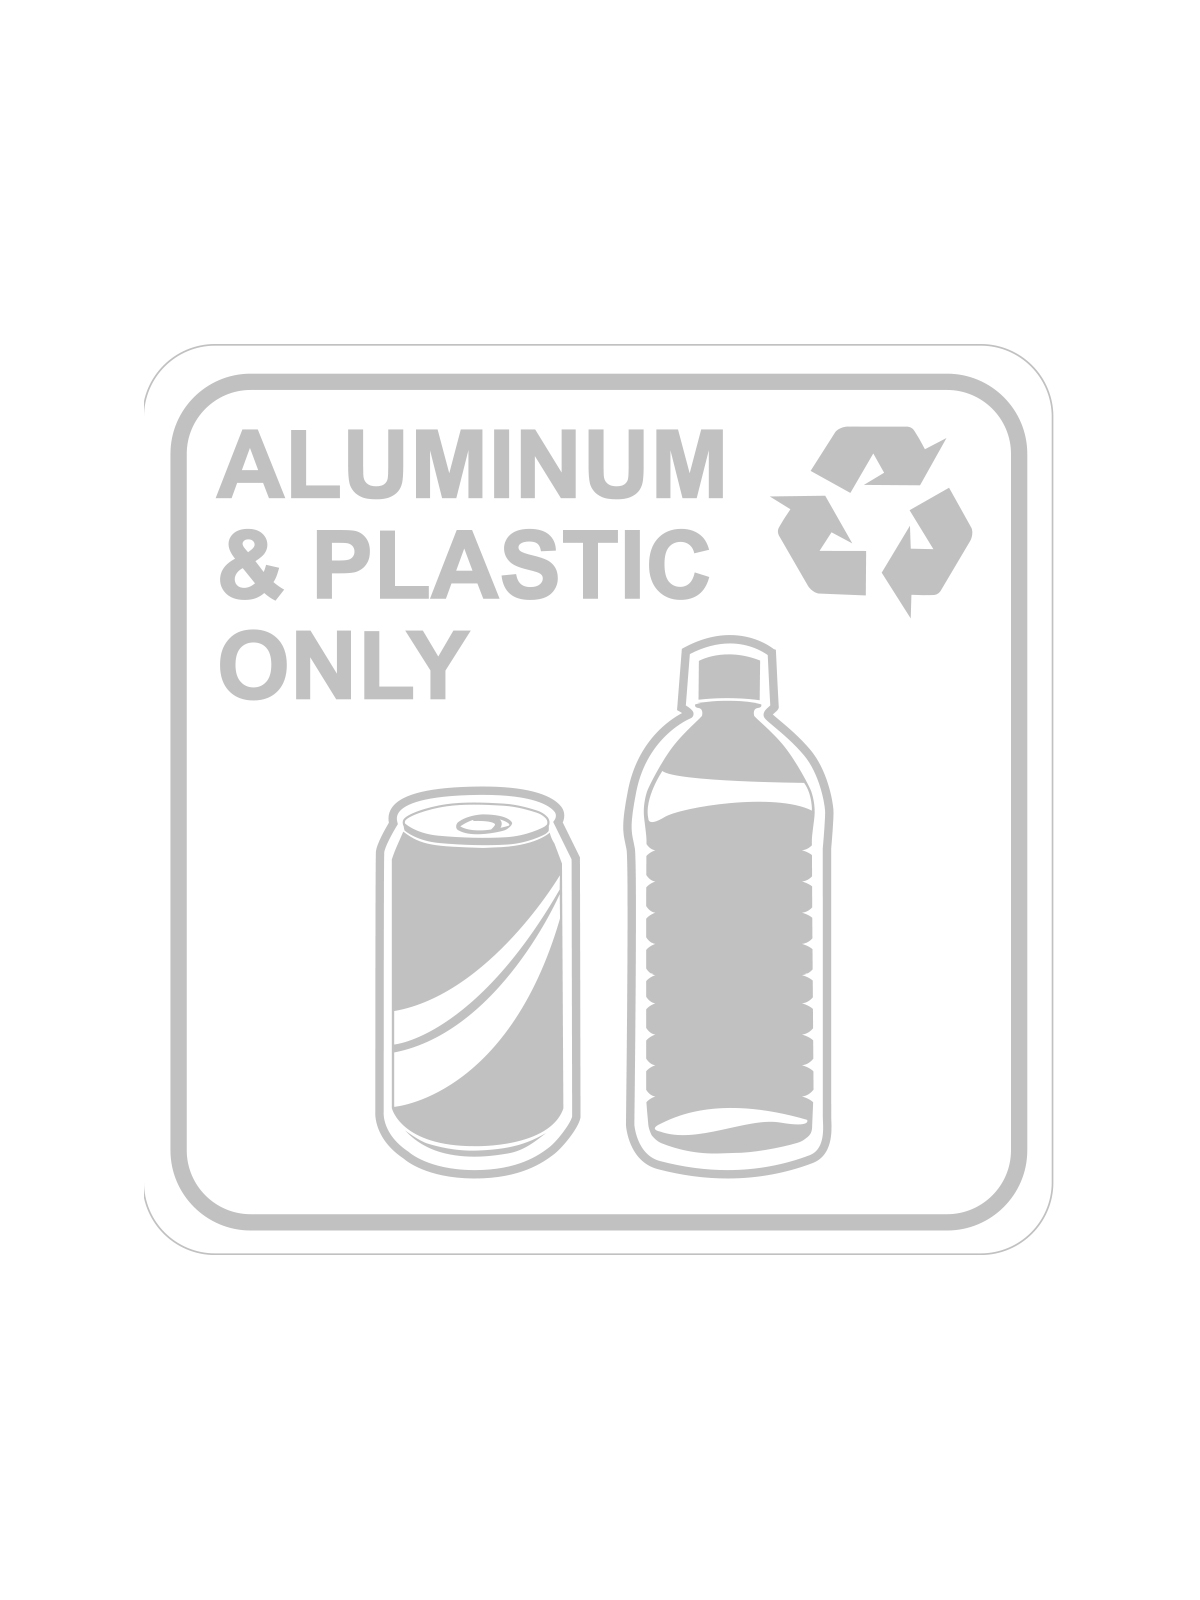 SQUARE LABEL ALUMINUM & PLASTIC ONLY